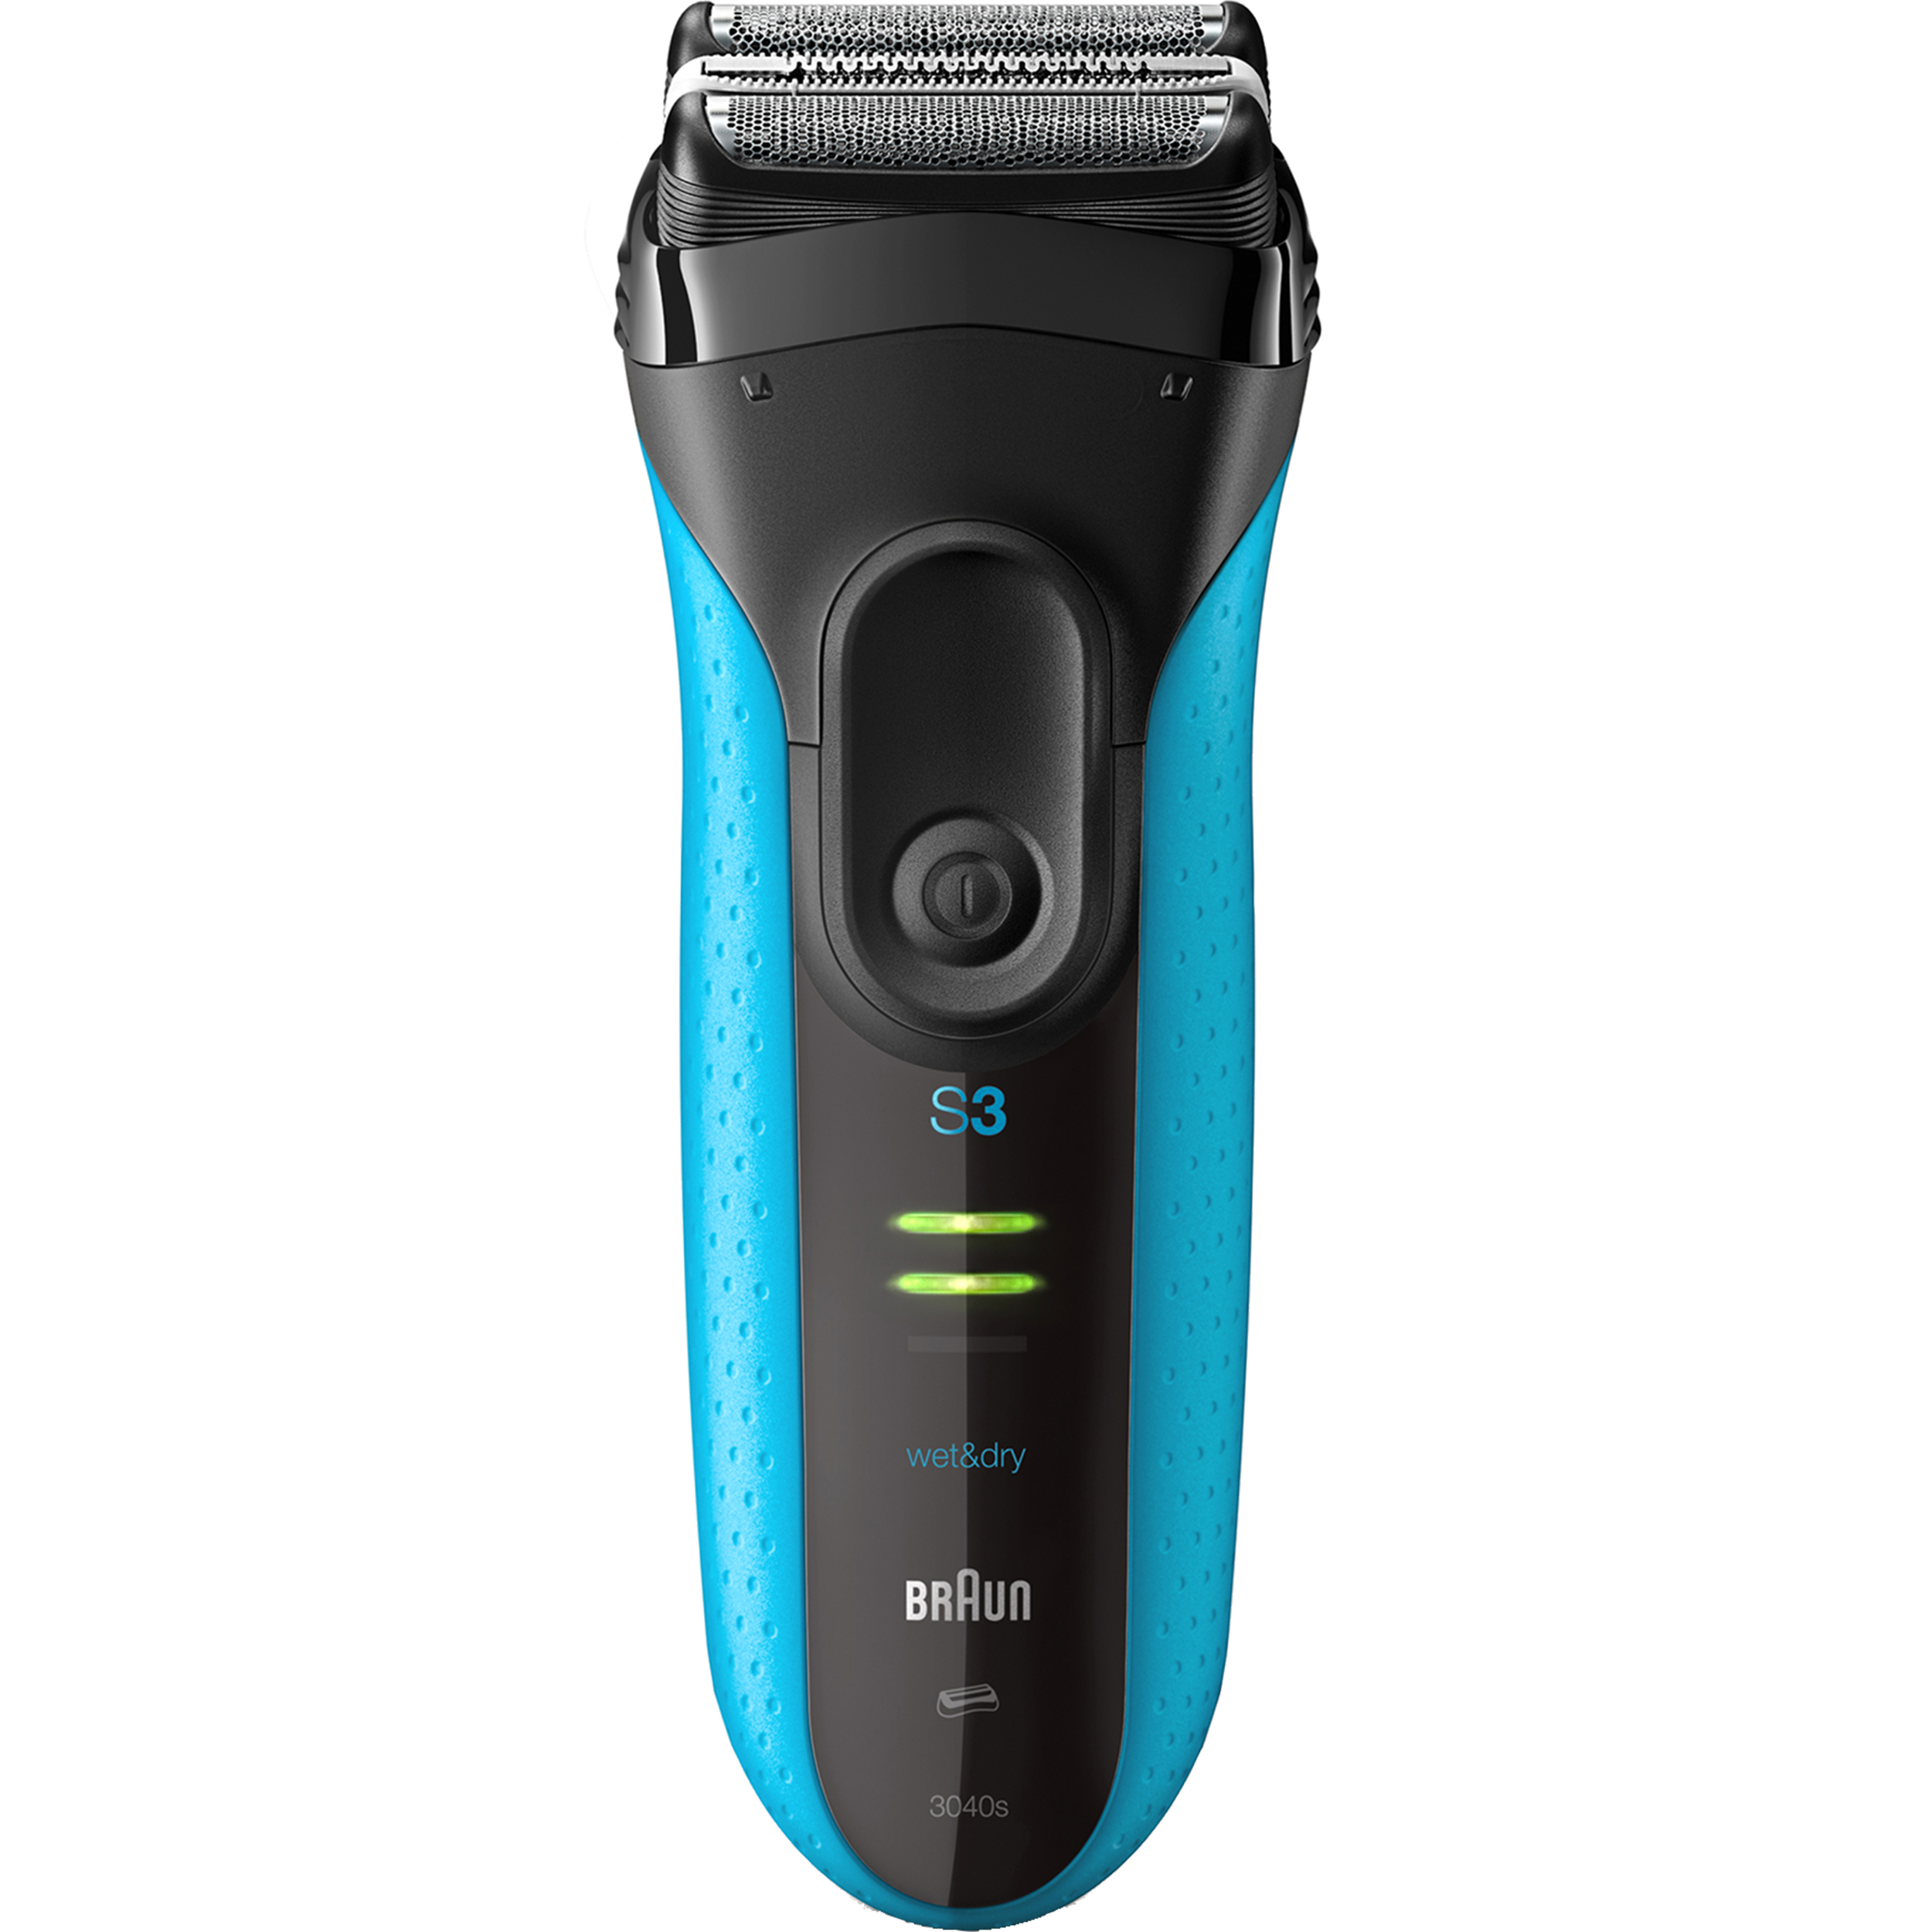 Braun Series 3 Proskin 3040s 20 Mail In Rebate Available Wet Dry